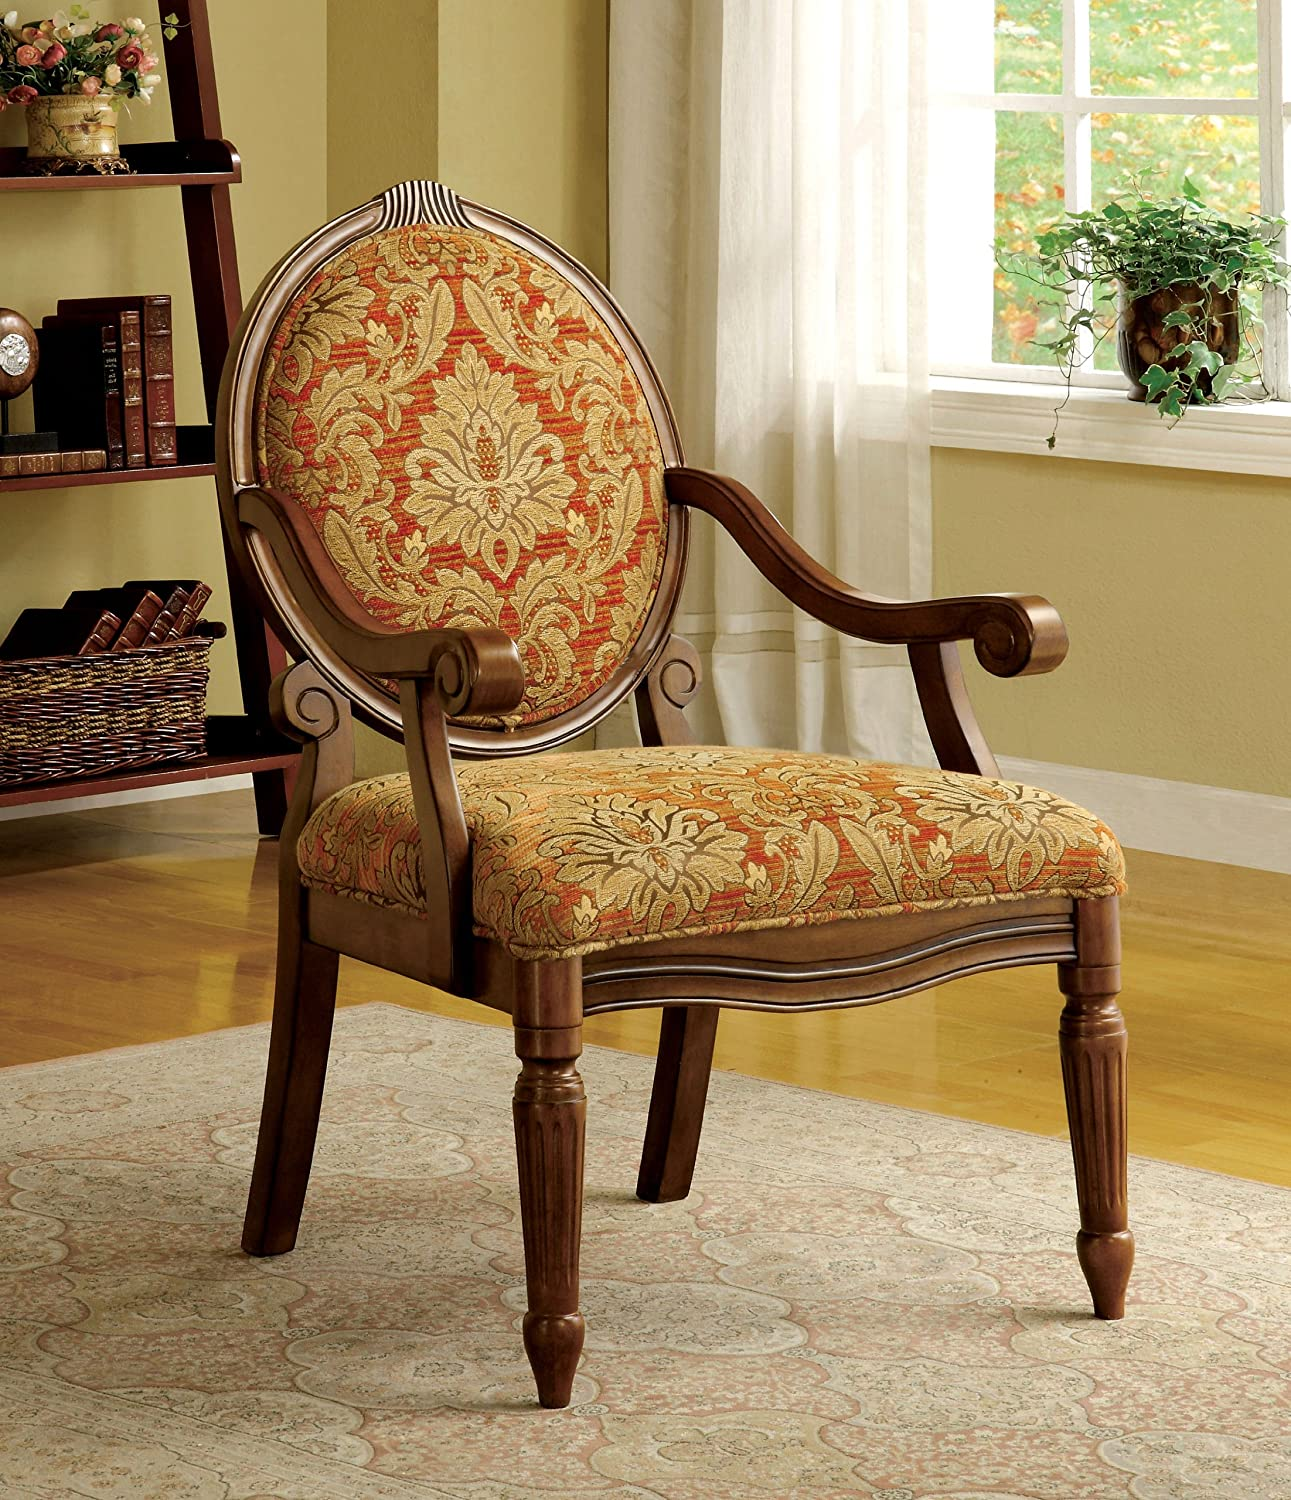 Attirant Amazon.com: Furniture Of America Gwyneth Victorian Style Padded Fabric Arm  Chair, Antique Oak Finish: Kitchen U0026 Dining